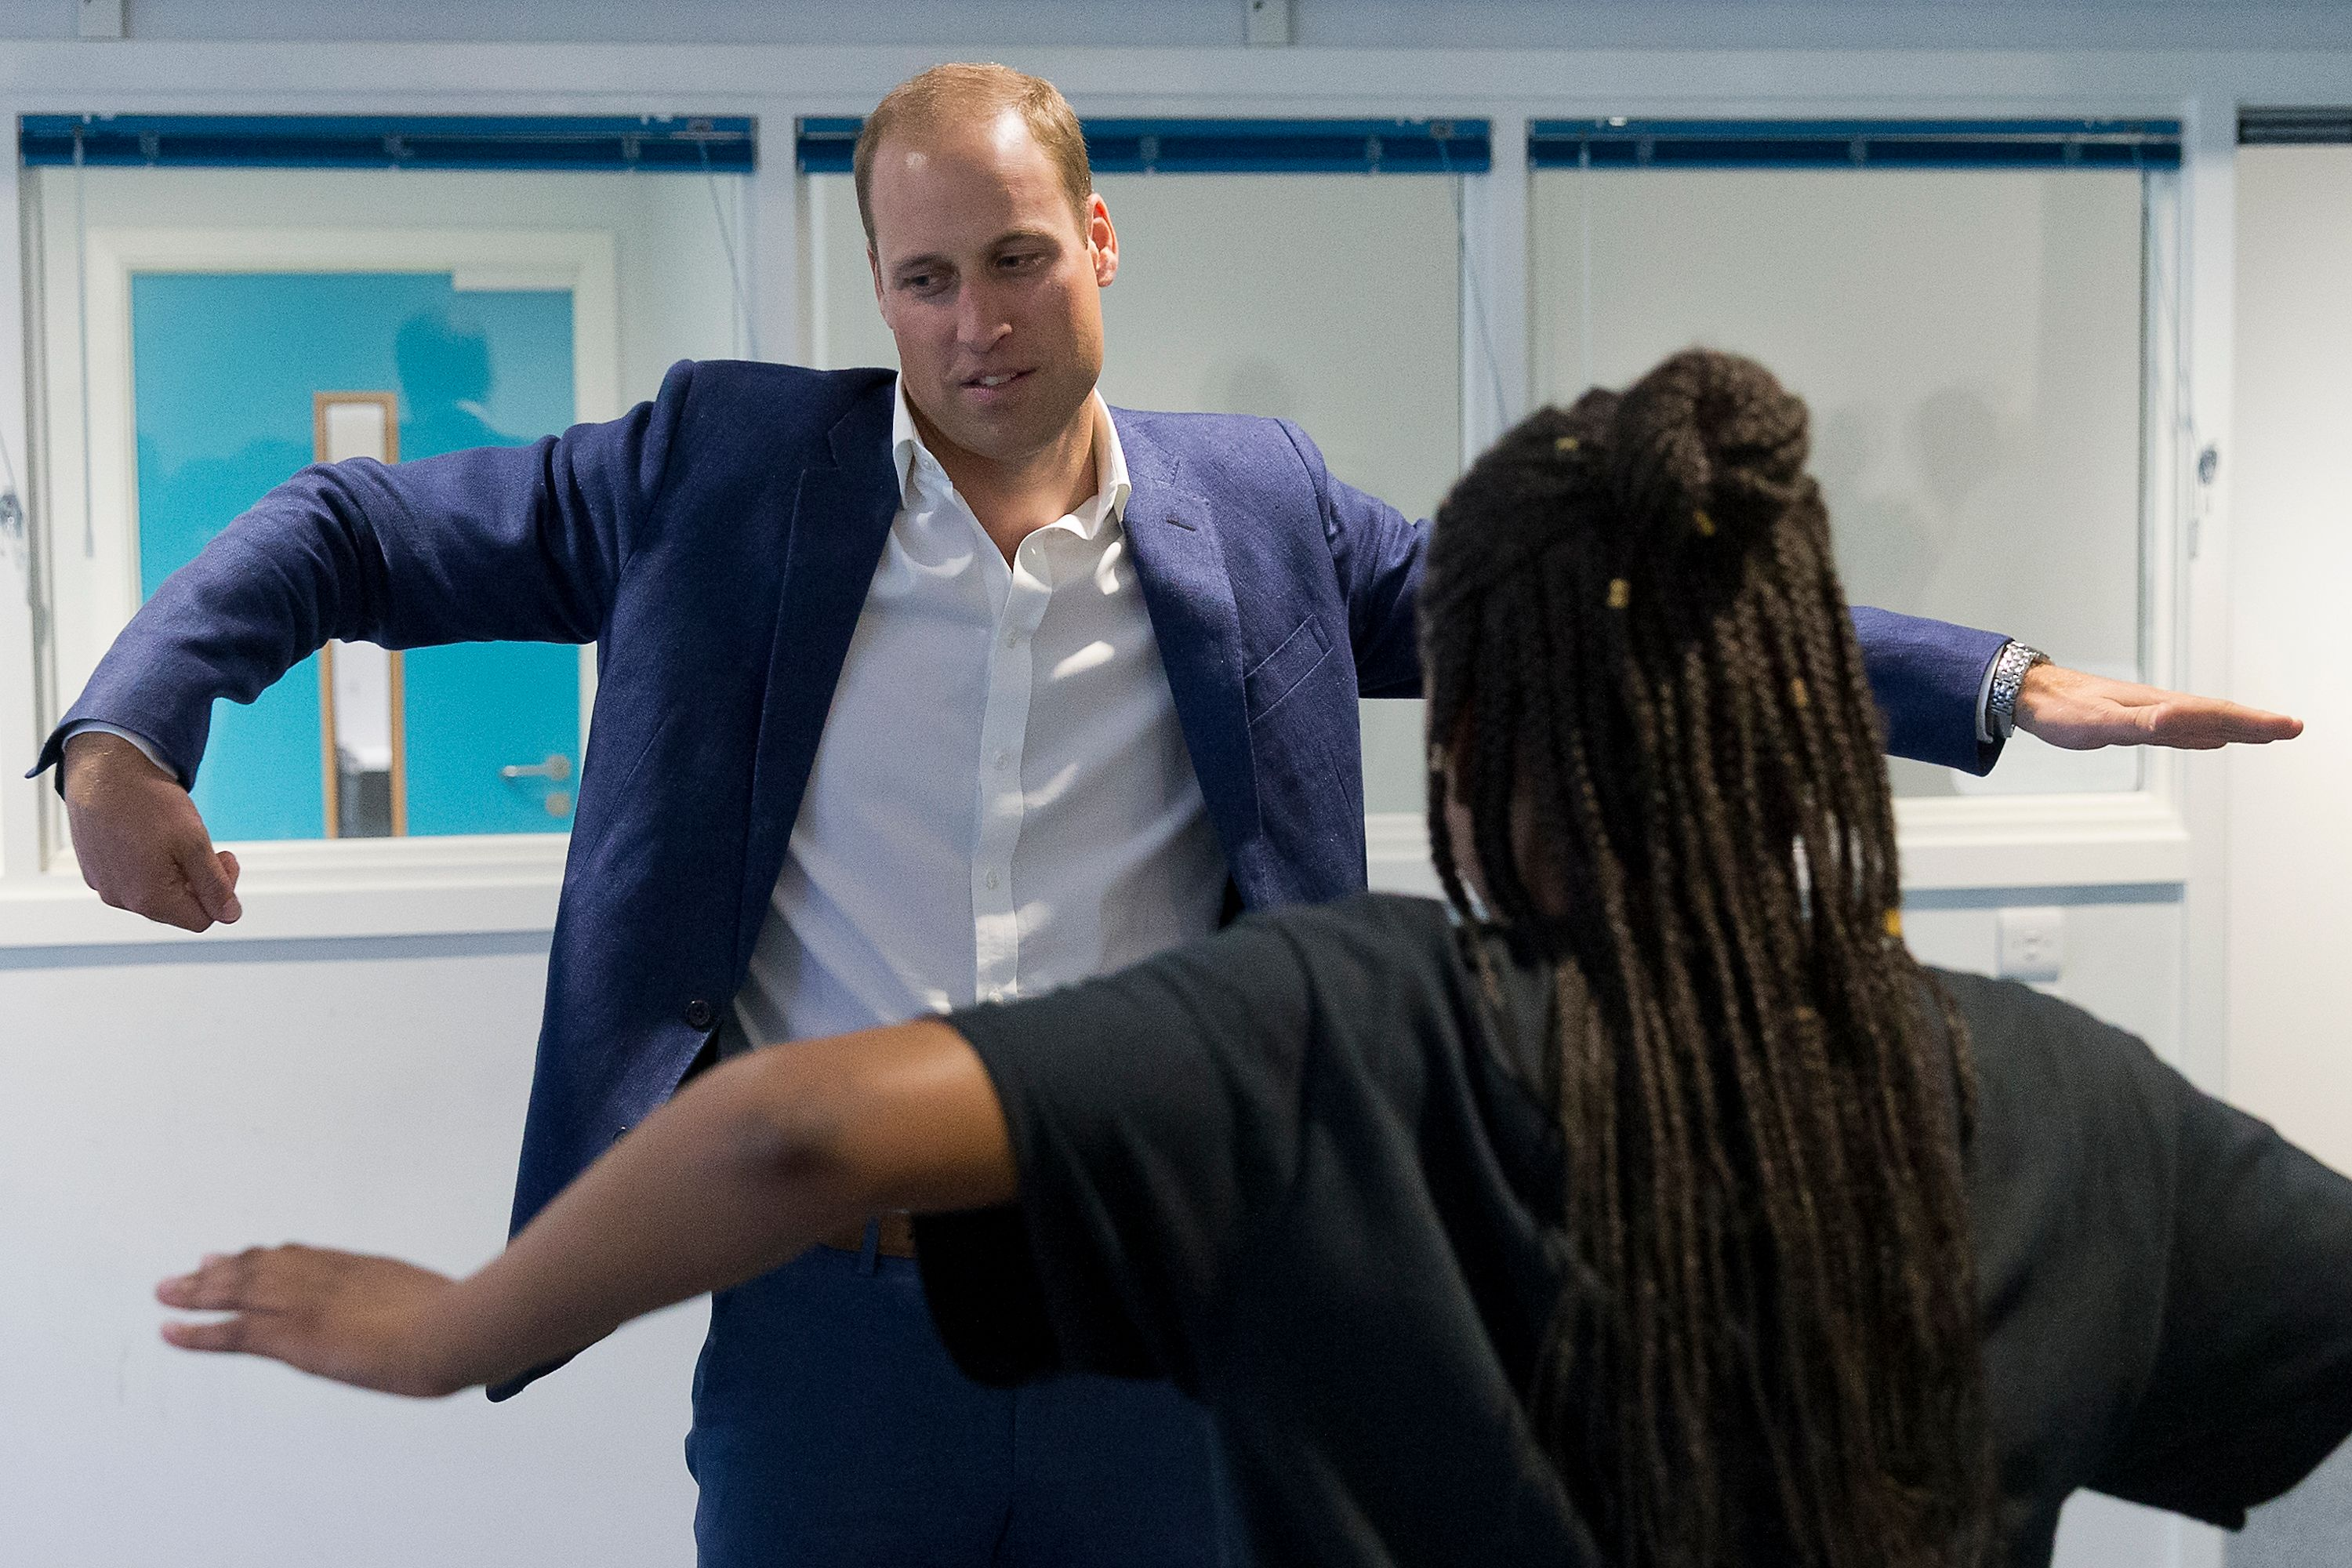 Britain's Prince William, Duke of Cambridge, learns a dance move with Scariofunk dance collective during a visit to Caius House Youth Centre in London on September 14, 2016. -